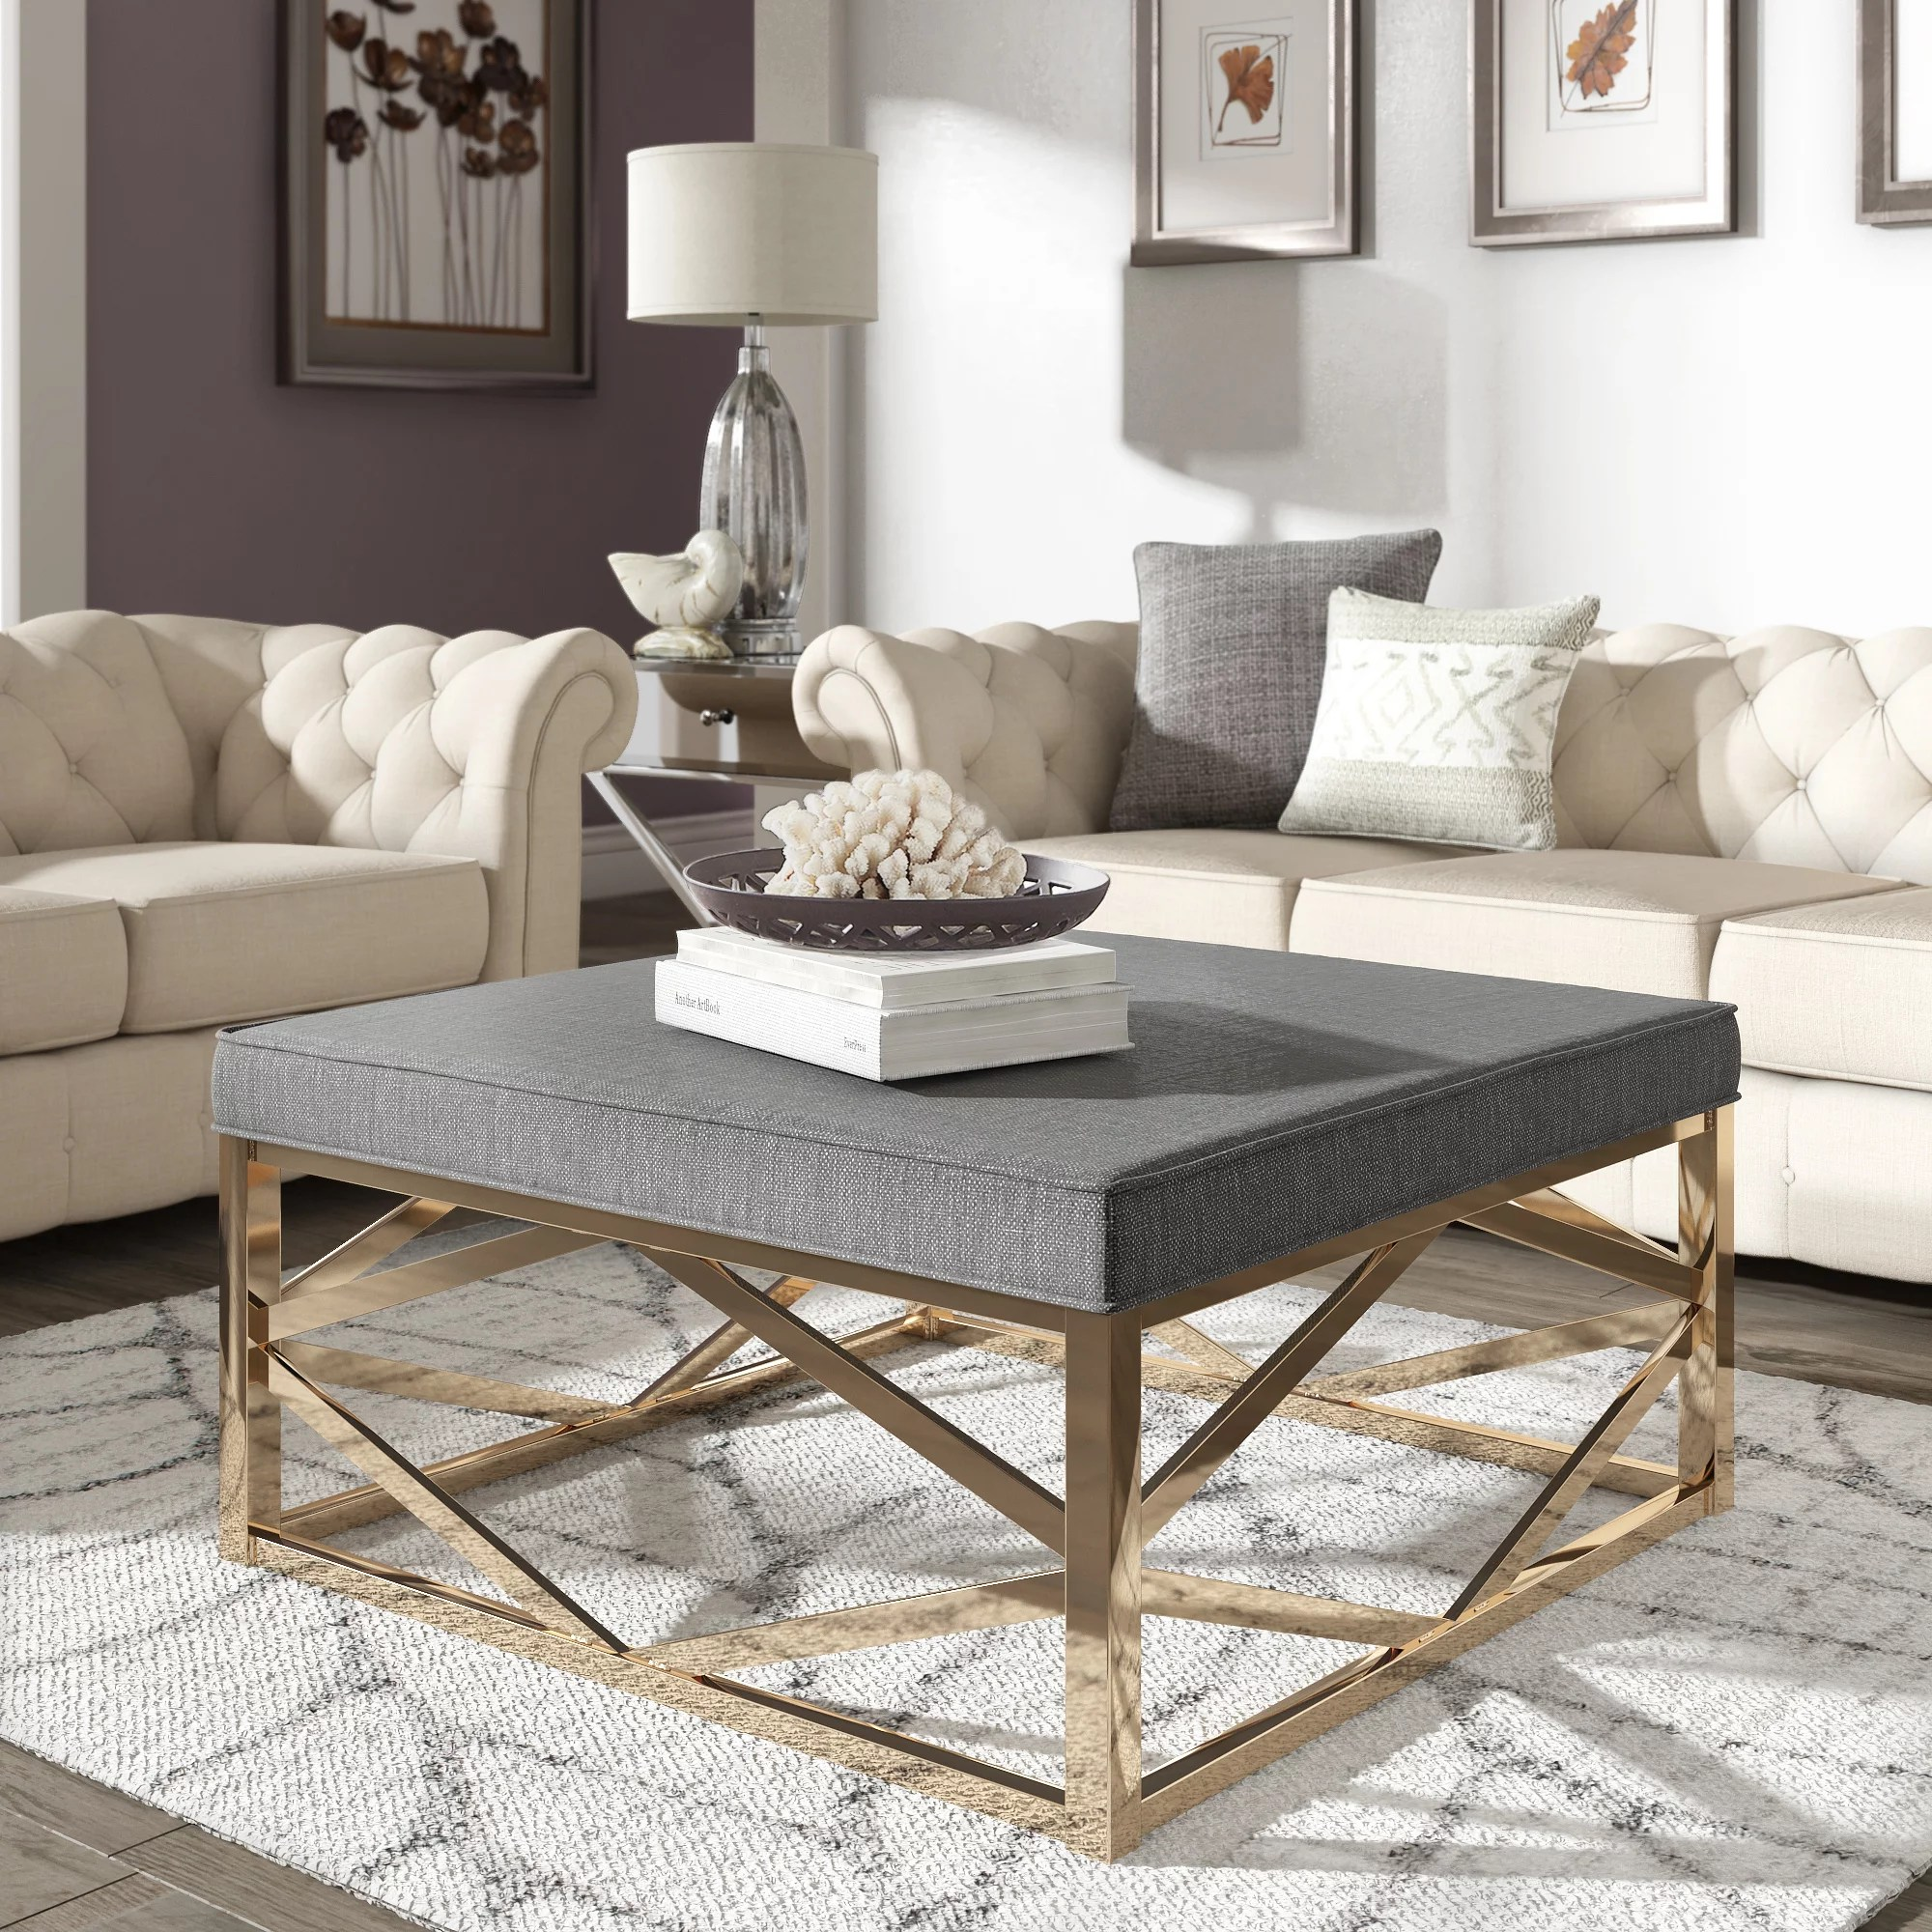 Colorful Ottoman Coffee Table Weston Home Libby Smooth Top Cushion Ottoman Coffee Table With Champagne Gold Geometric Base Multiple Colors